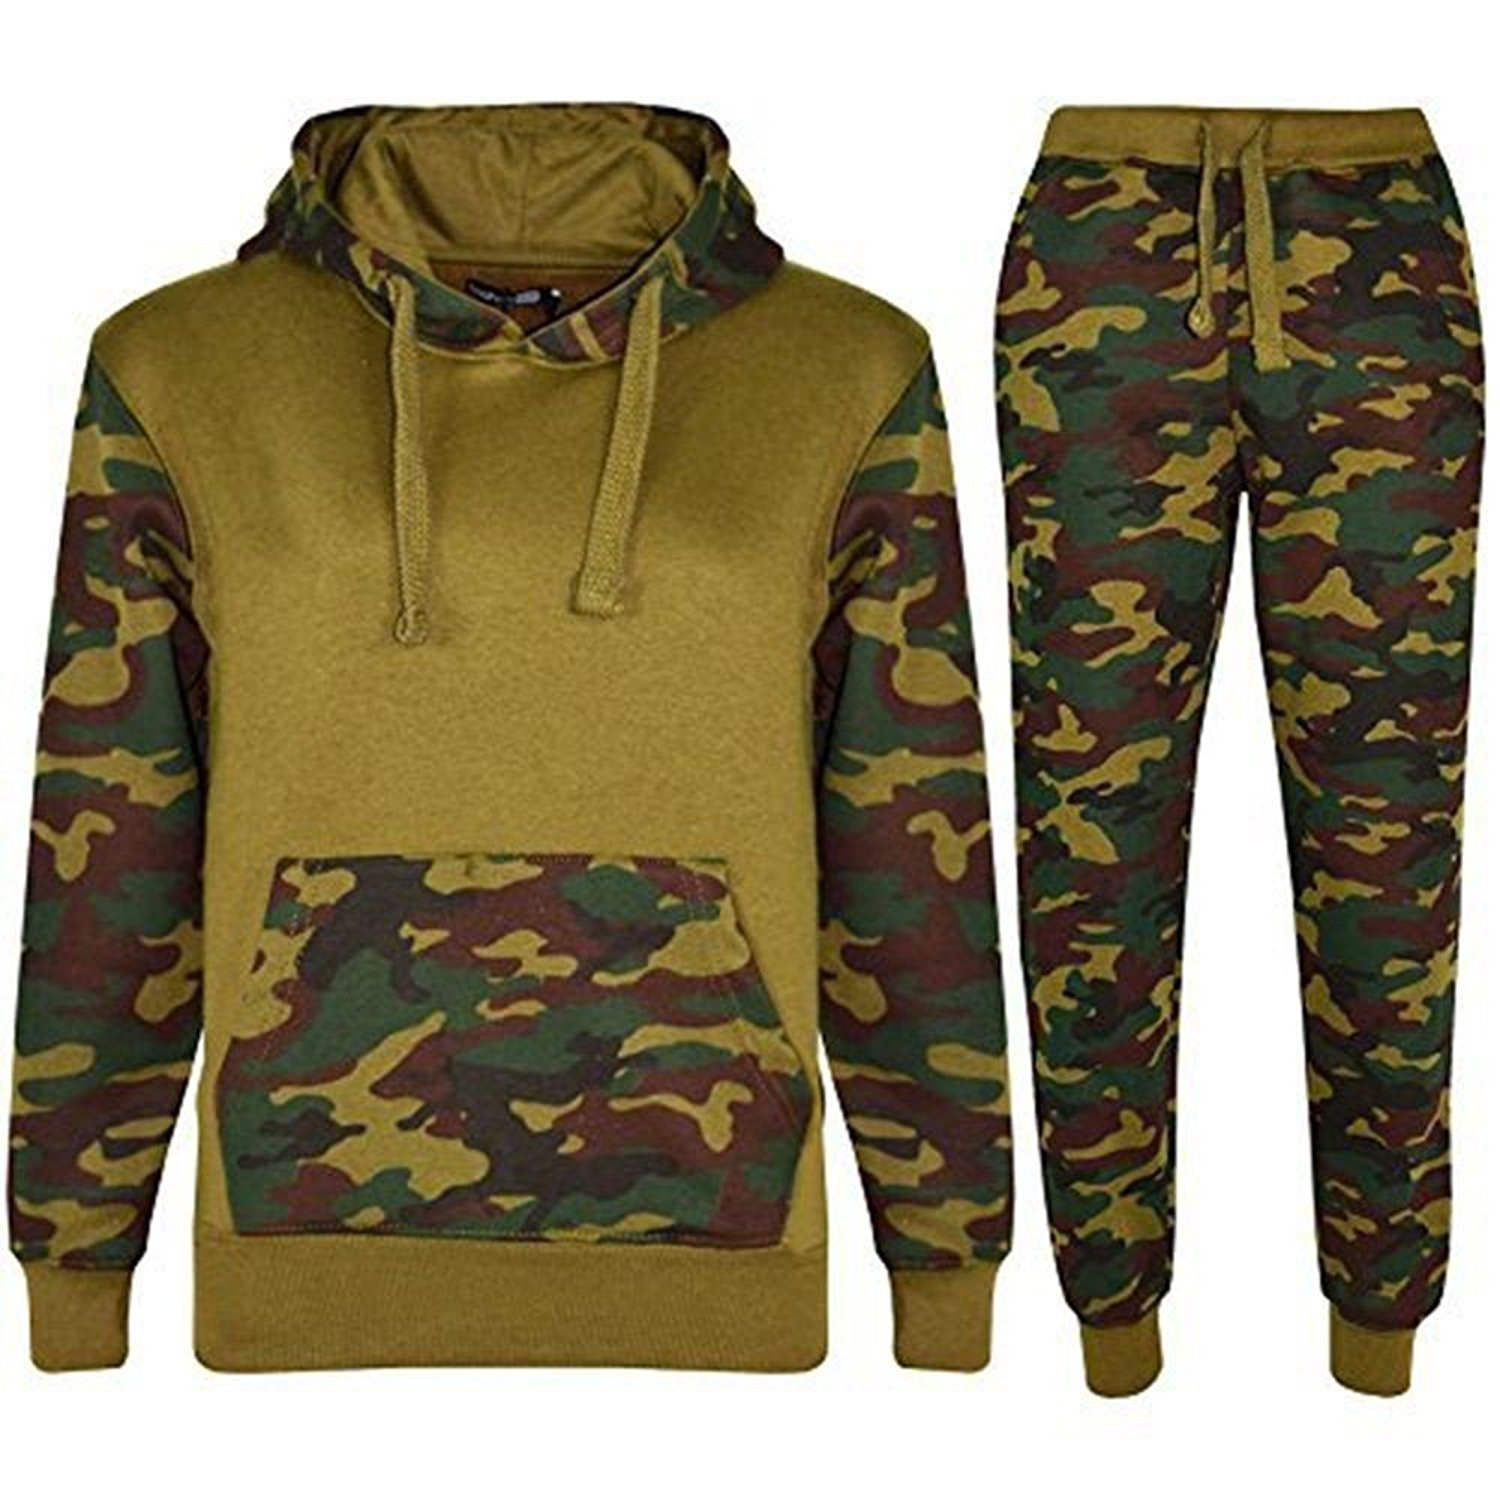 NOROZE Mens Sports Army Camouflage Tracksuit Hoodie Zipper Joggers 2 Piece Suit